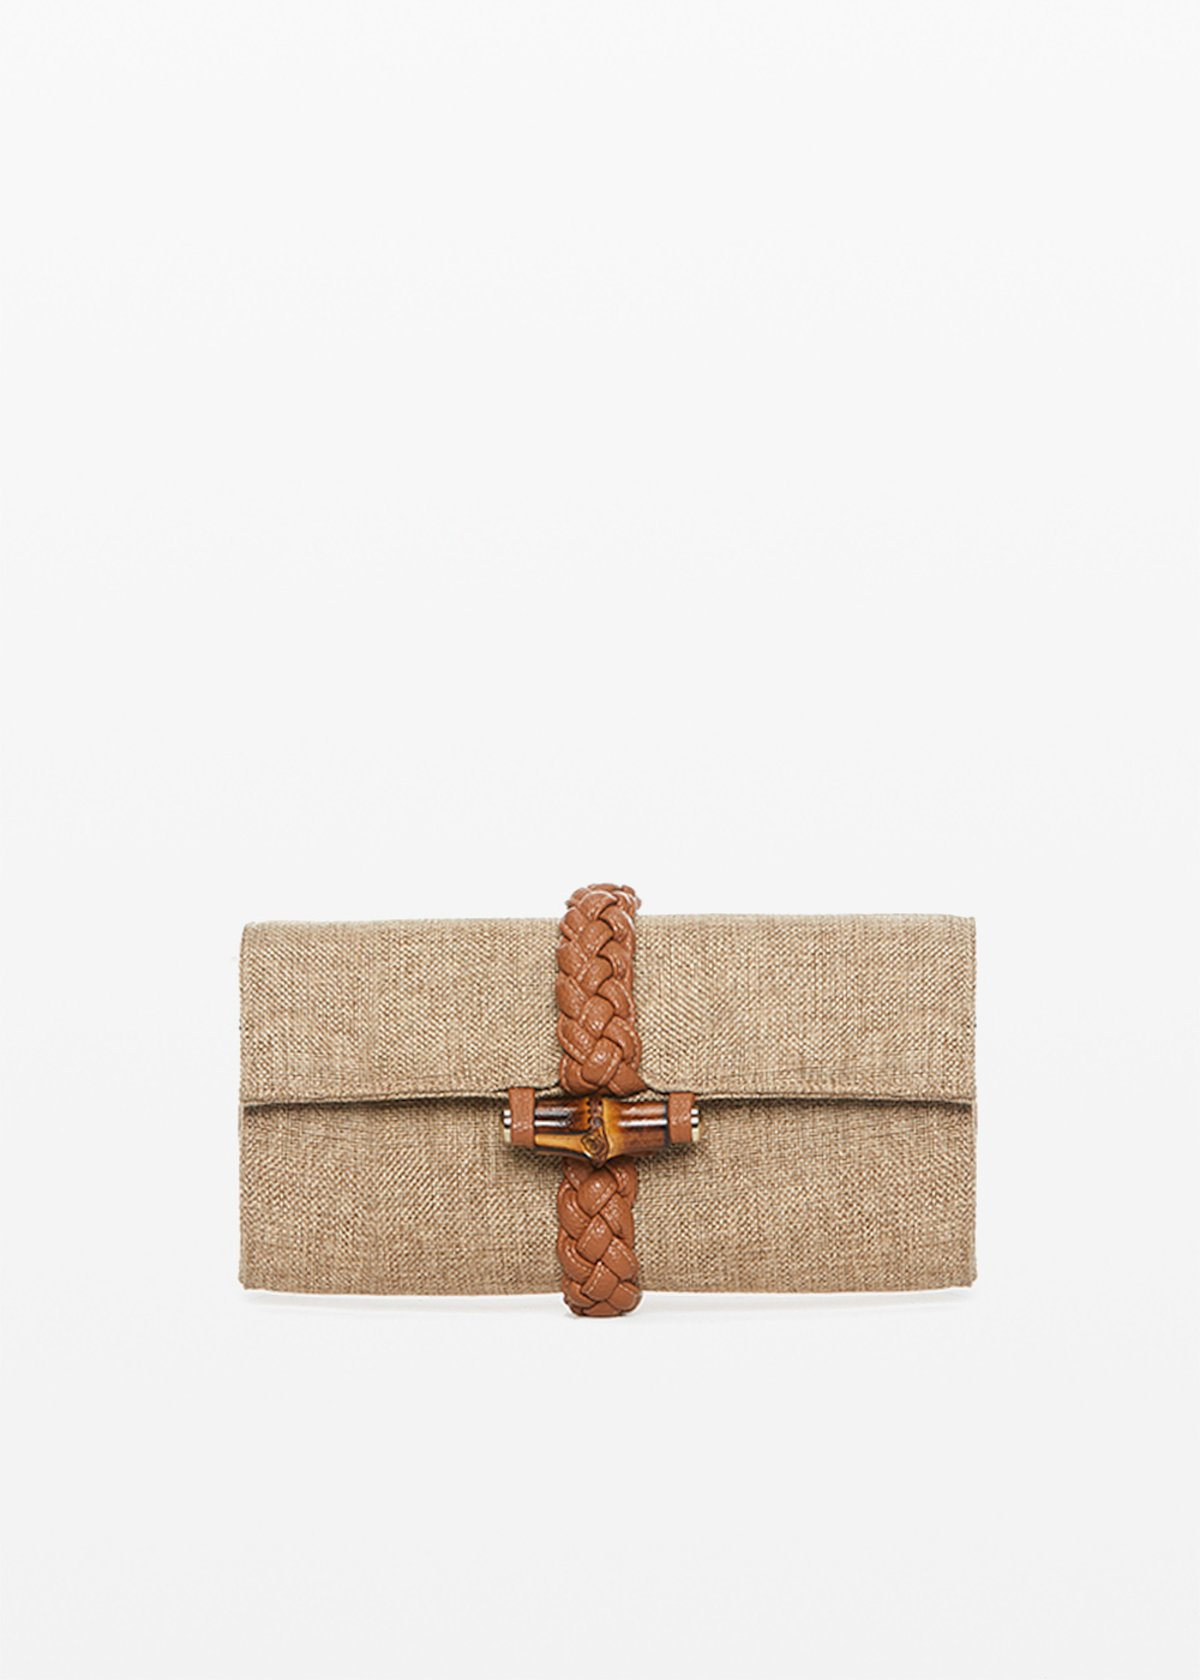 Bard clutch weaving detail - Desert / Lion - Woman - Category image